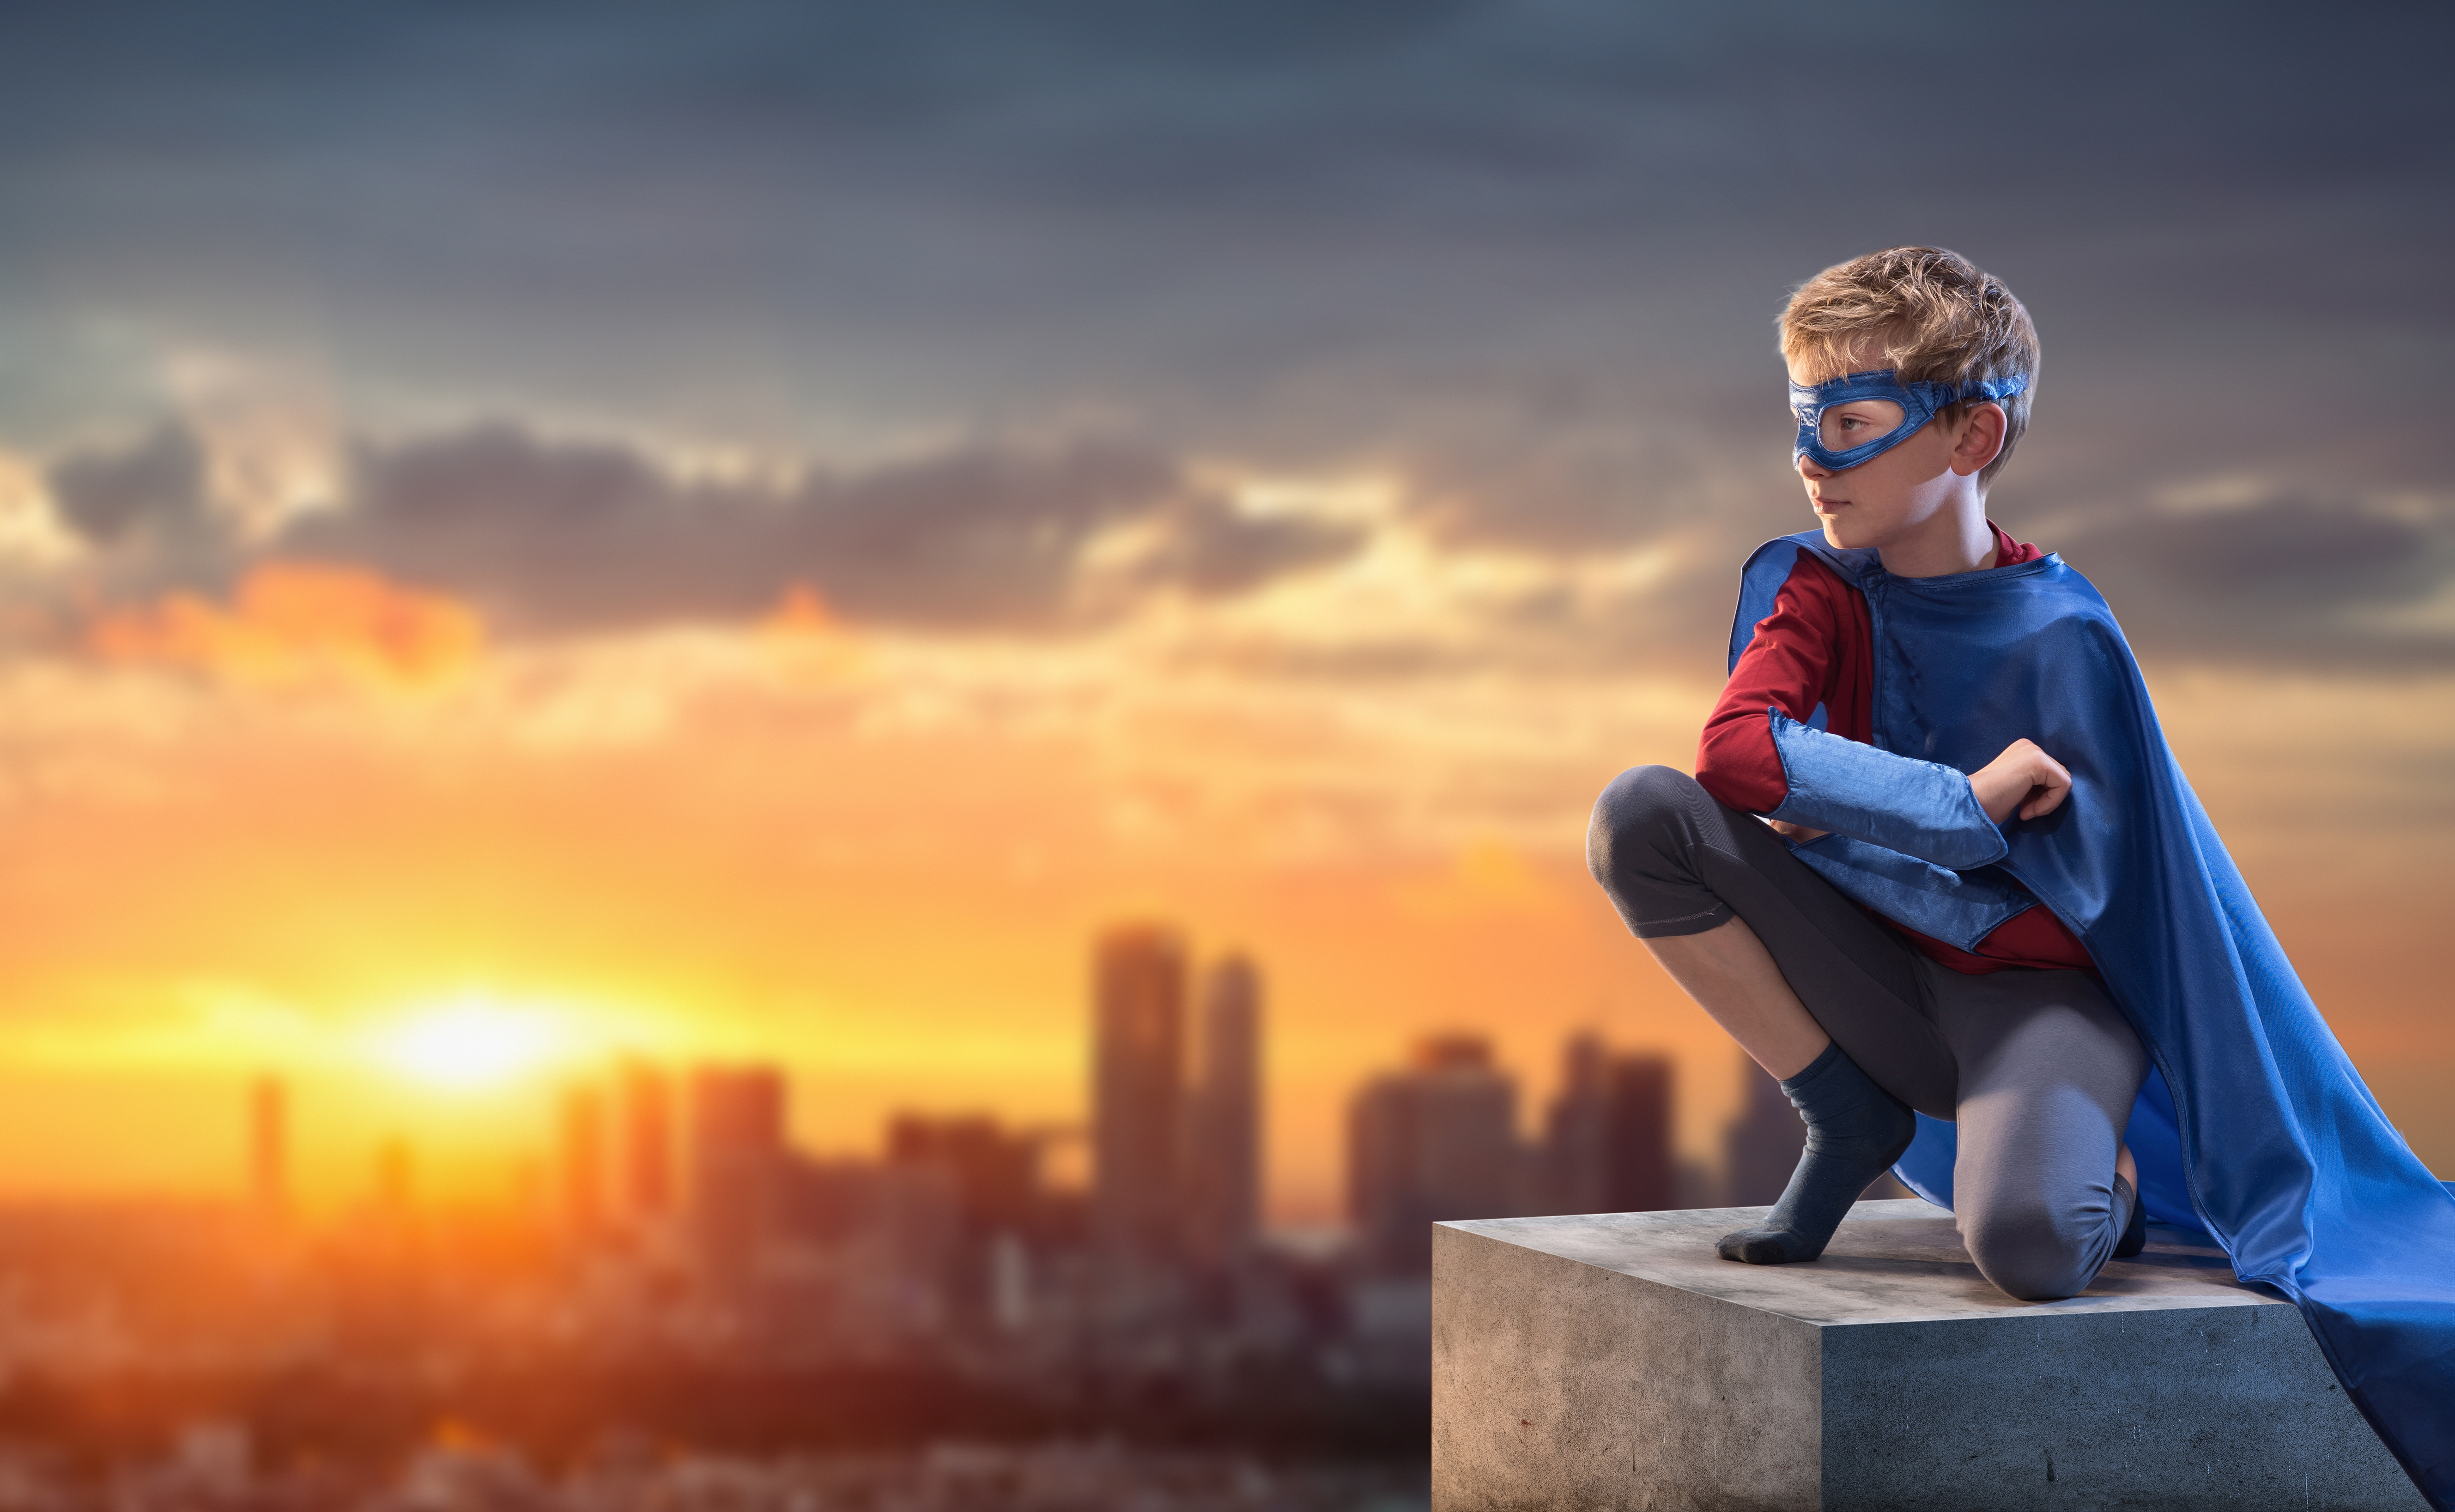 Boy dressed as superhero dreams about saving the city